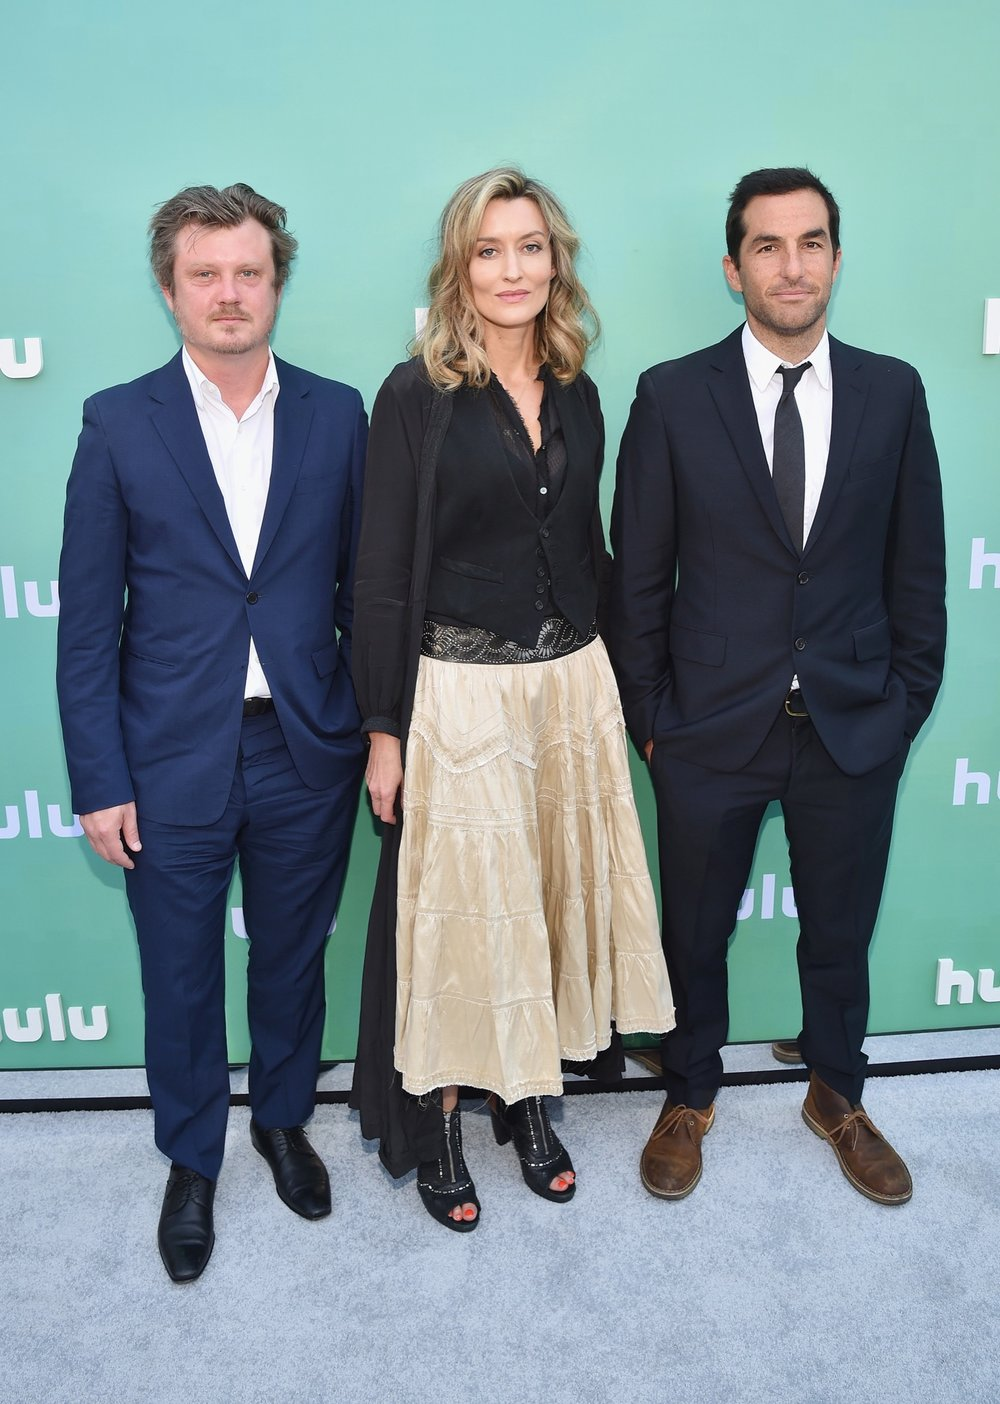 NEW YORK, NY - MAY 02:  (L-R) Beau Willimon, Natasha McElhone and Jordan Tappis attend the Hulu Upfront 2018 Brunch at La Sirena on May 2, 2018 in New York City.  (Photo by Bryan Bedder/Getty Images for Hulu) *** Local Caption *** Beau Willimon;Natasha McElhone;Jordan Tappis